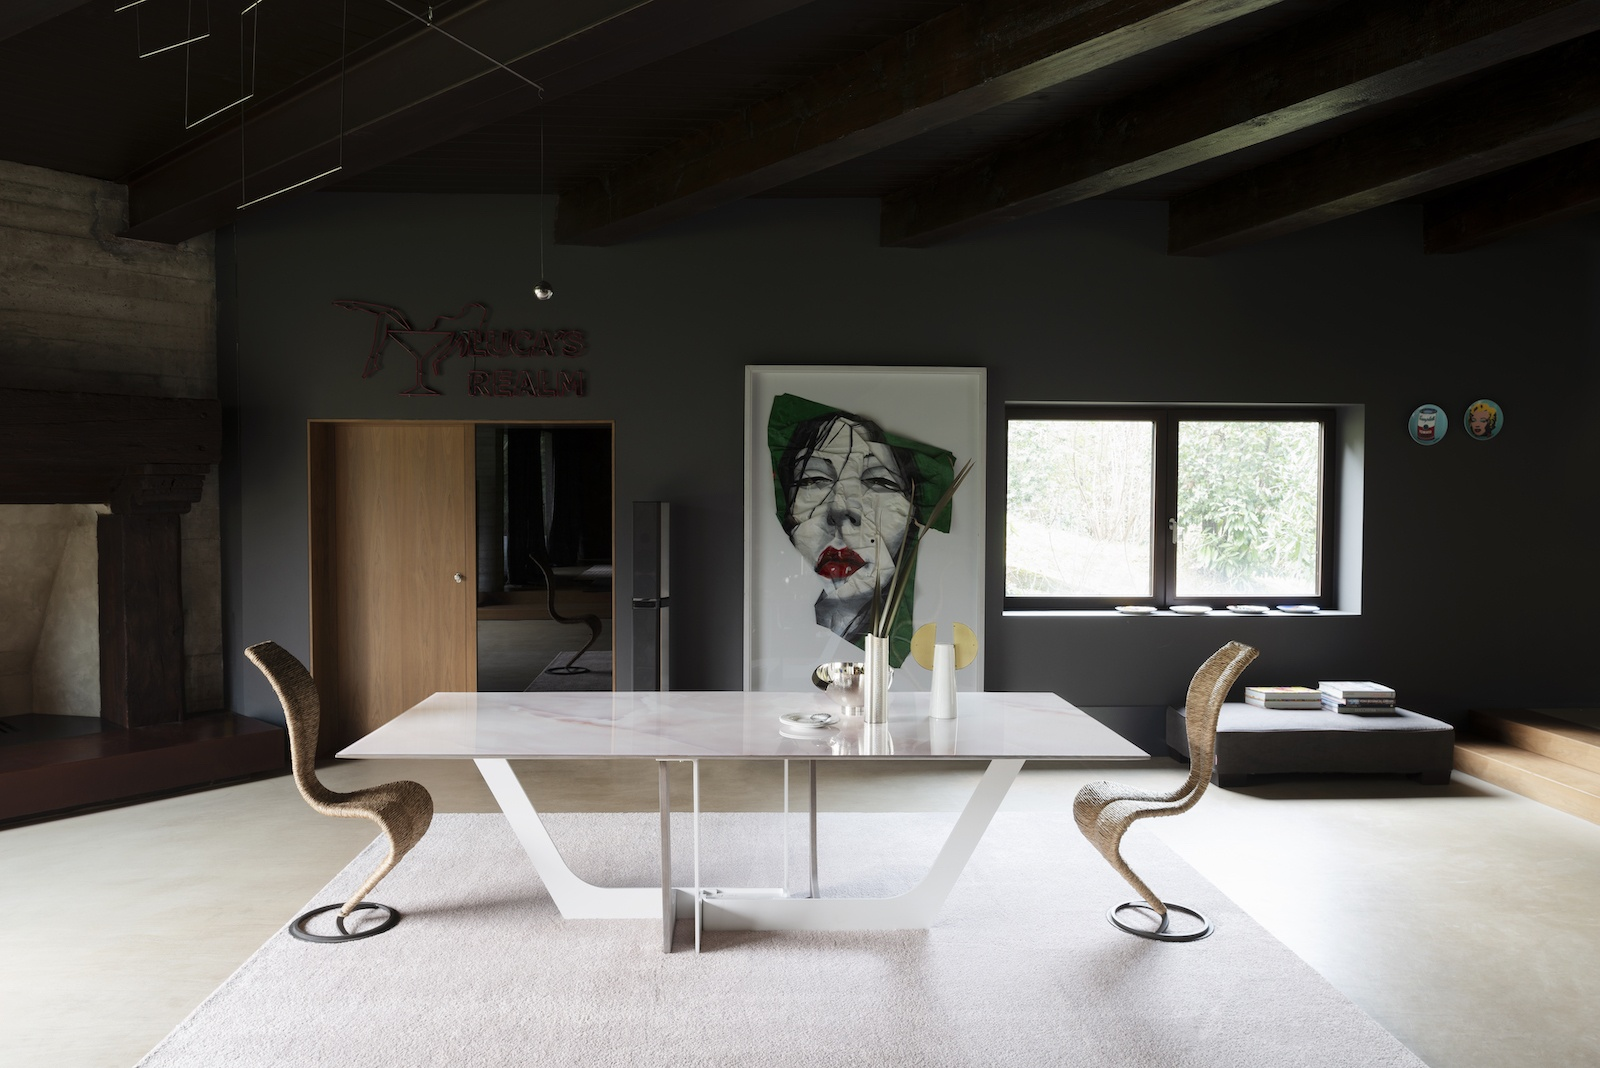 Arredamento Casa Moderno our ideas for decorating a modern home with zanetto silver